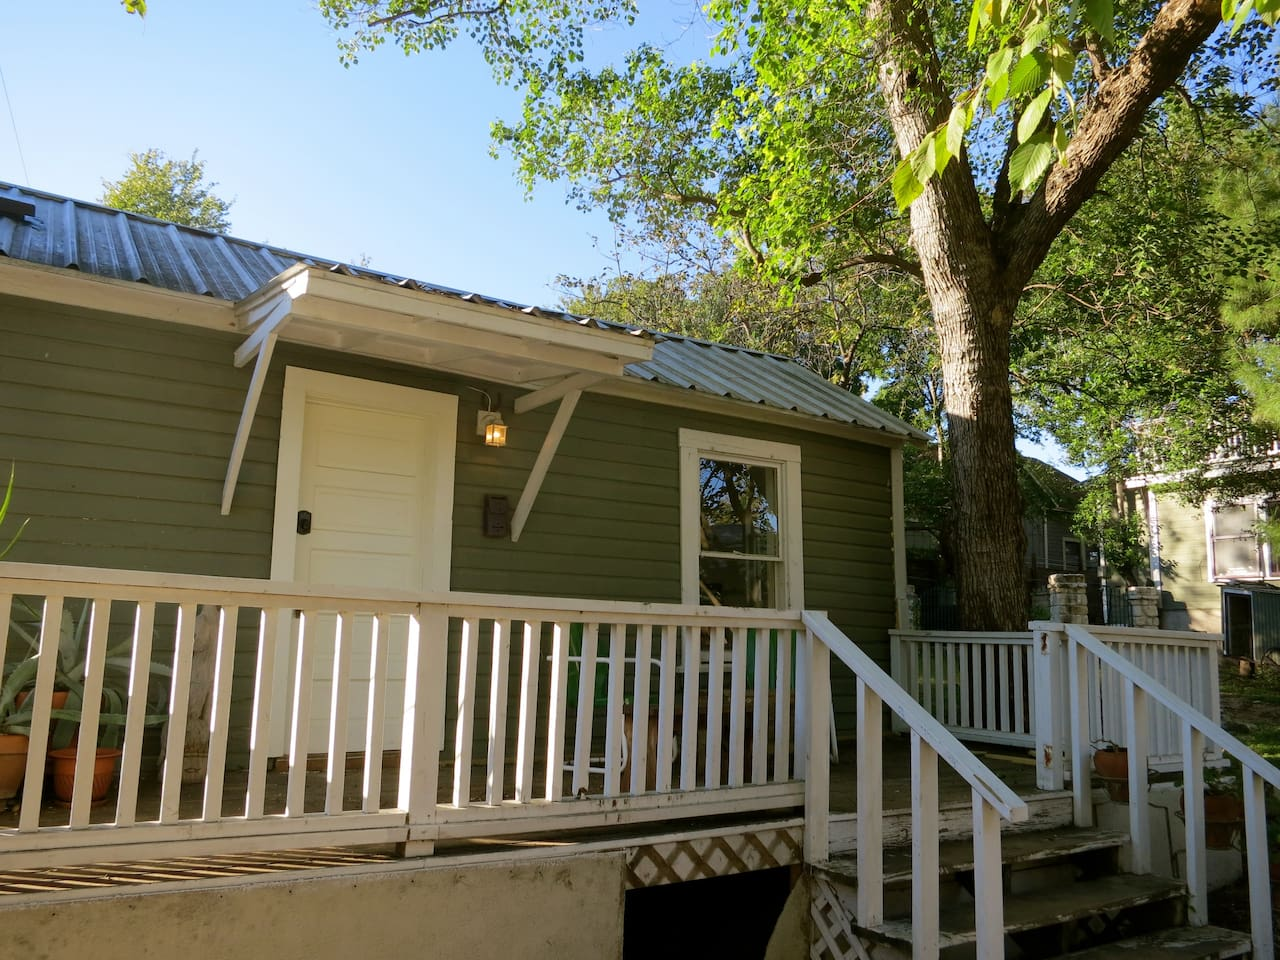 Welcome to the cottage on our secluded property, surrounded by trees and calm, just moments from downtown.